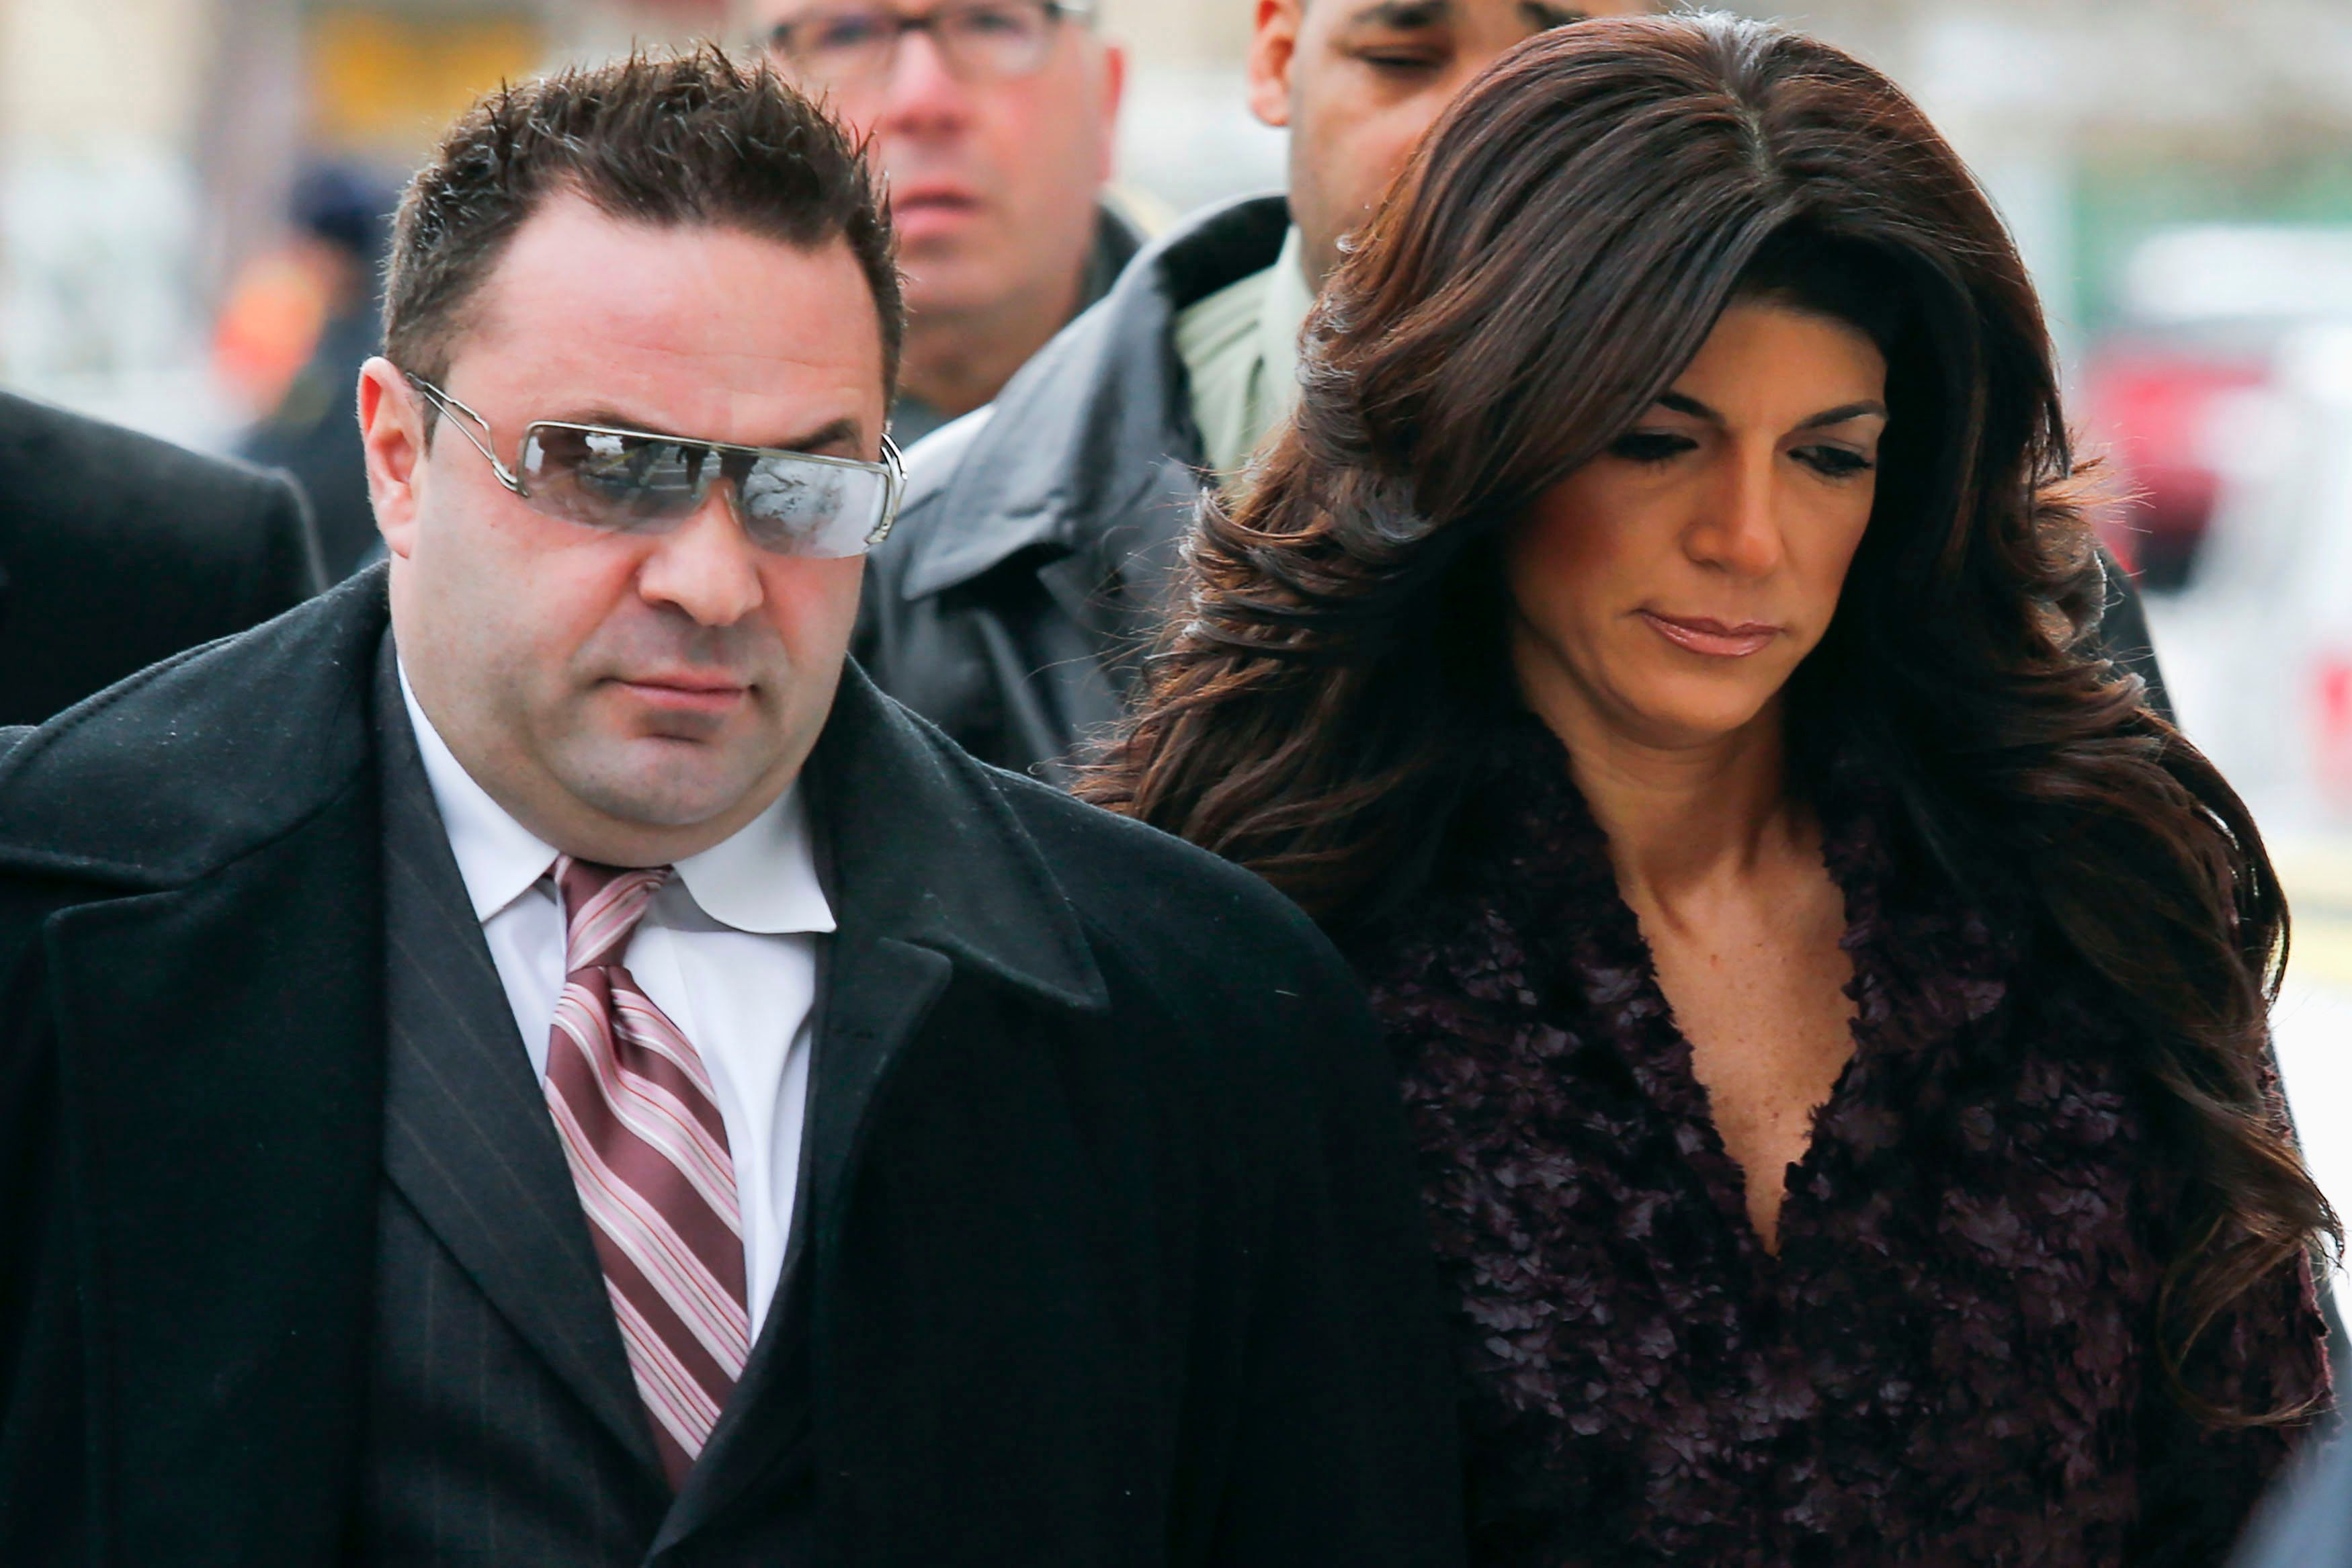 Husband of 'Housewives' star to be deported